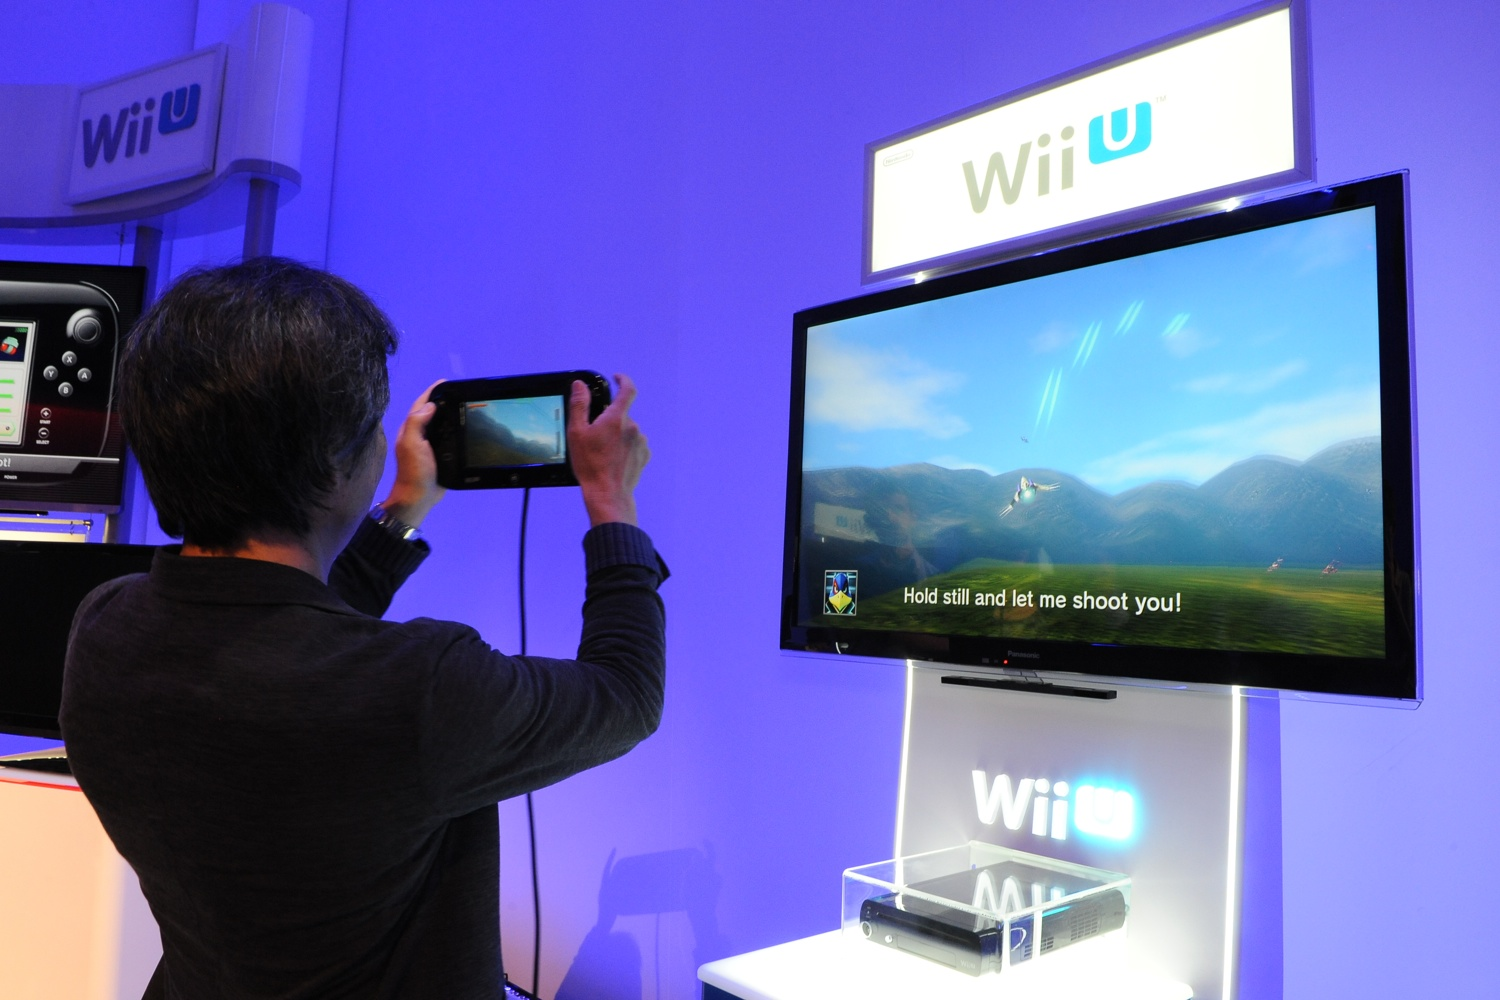 nintendo's new strategic approach a wii Nintendo identifies new market opportunities by adopting the blue ocean strategy with its wii console, it sought new customers by promoting fun, game library, and magic wand while intentionally sacrificing graphics, physics, and other high priced features.